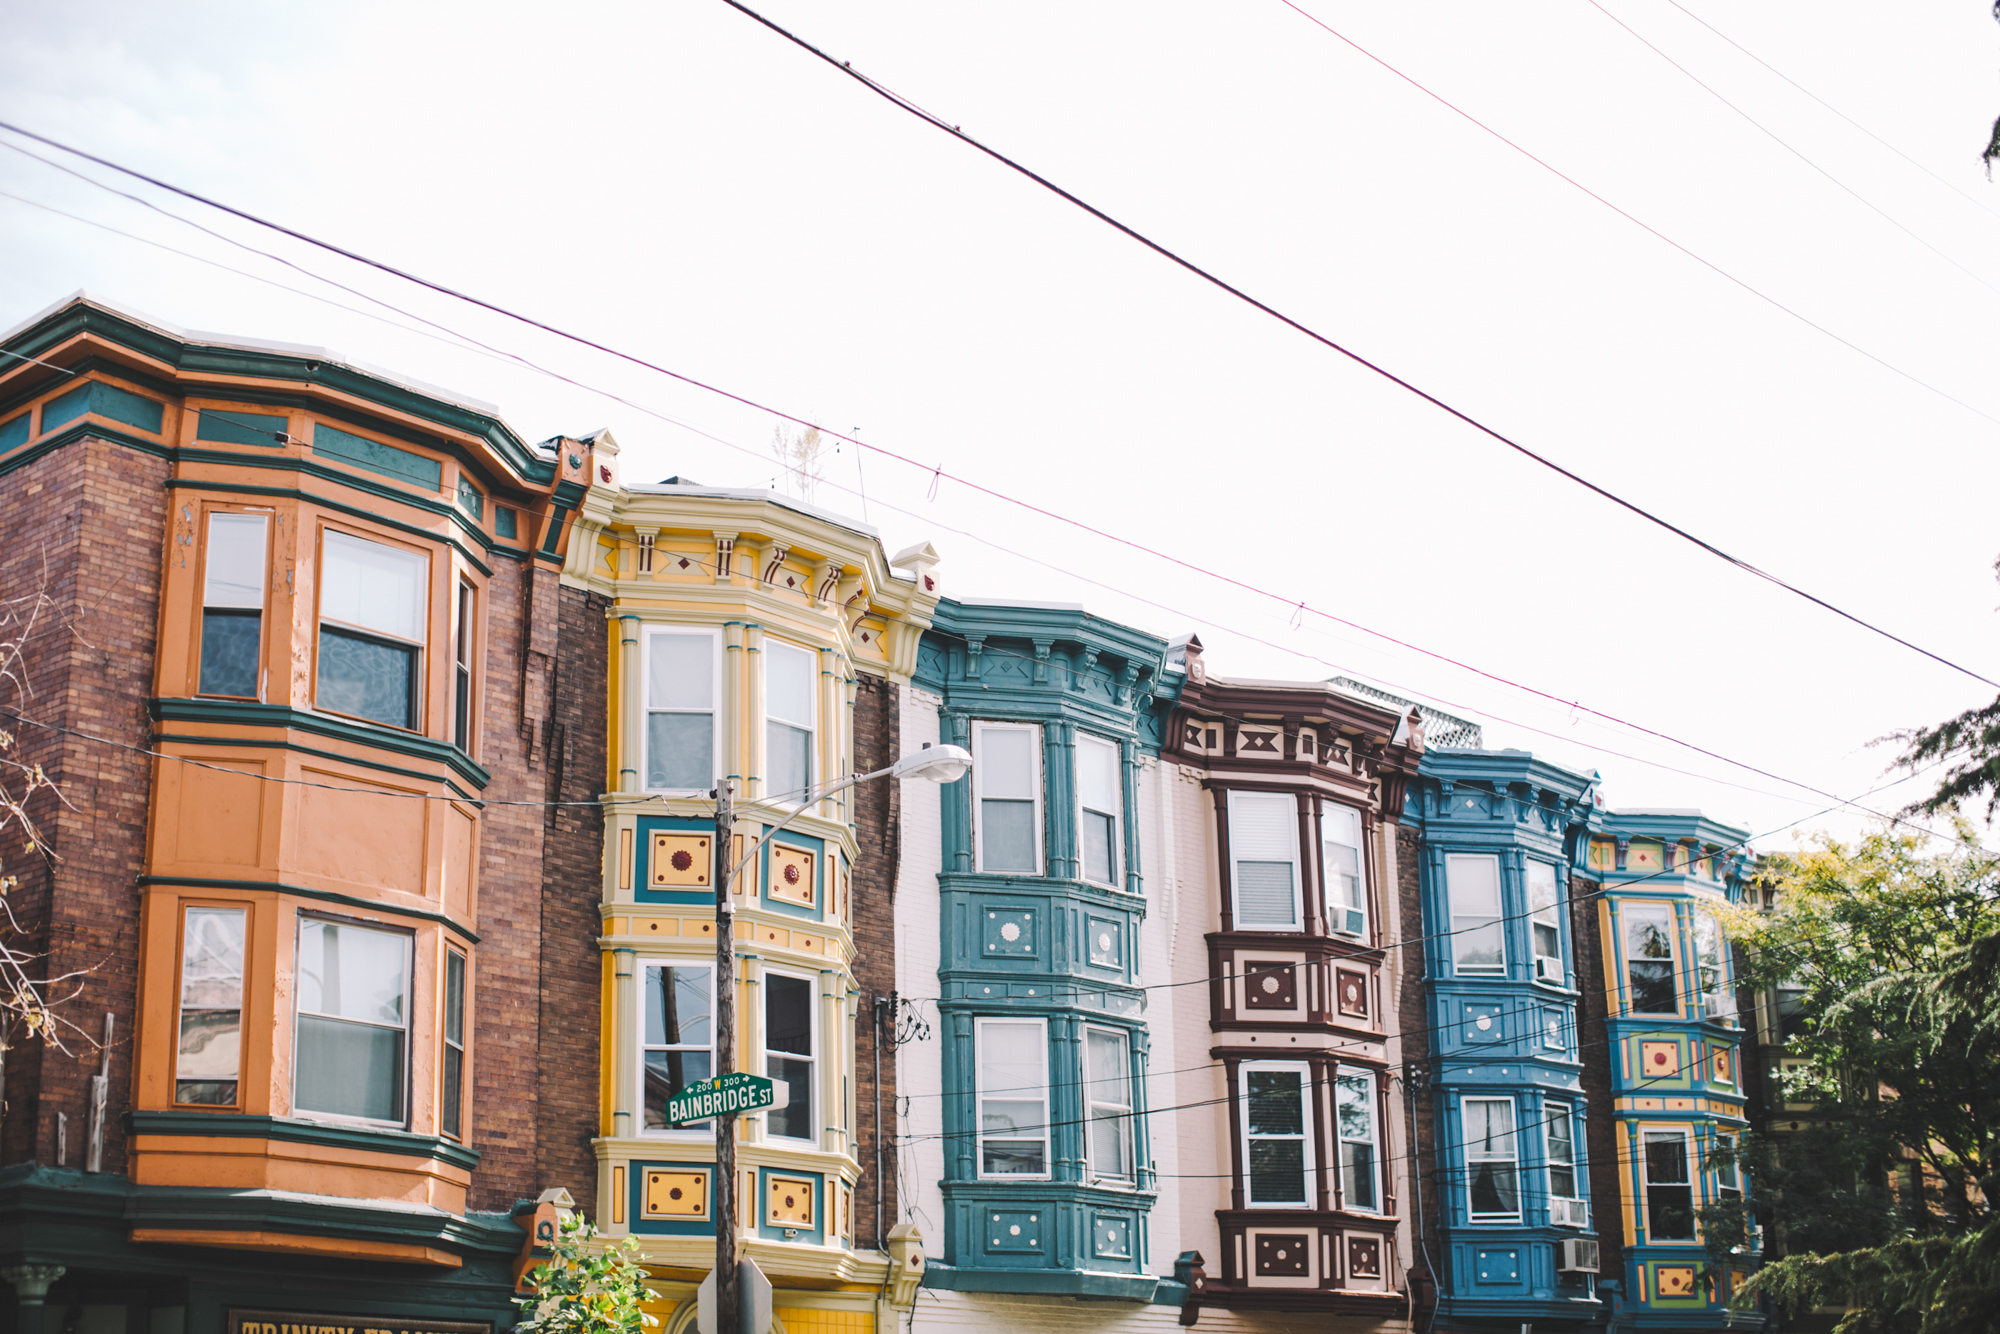 Colorful houses in Philly.